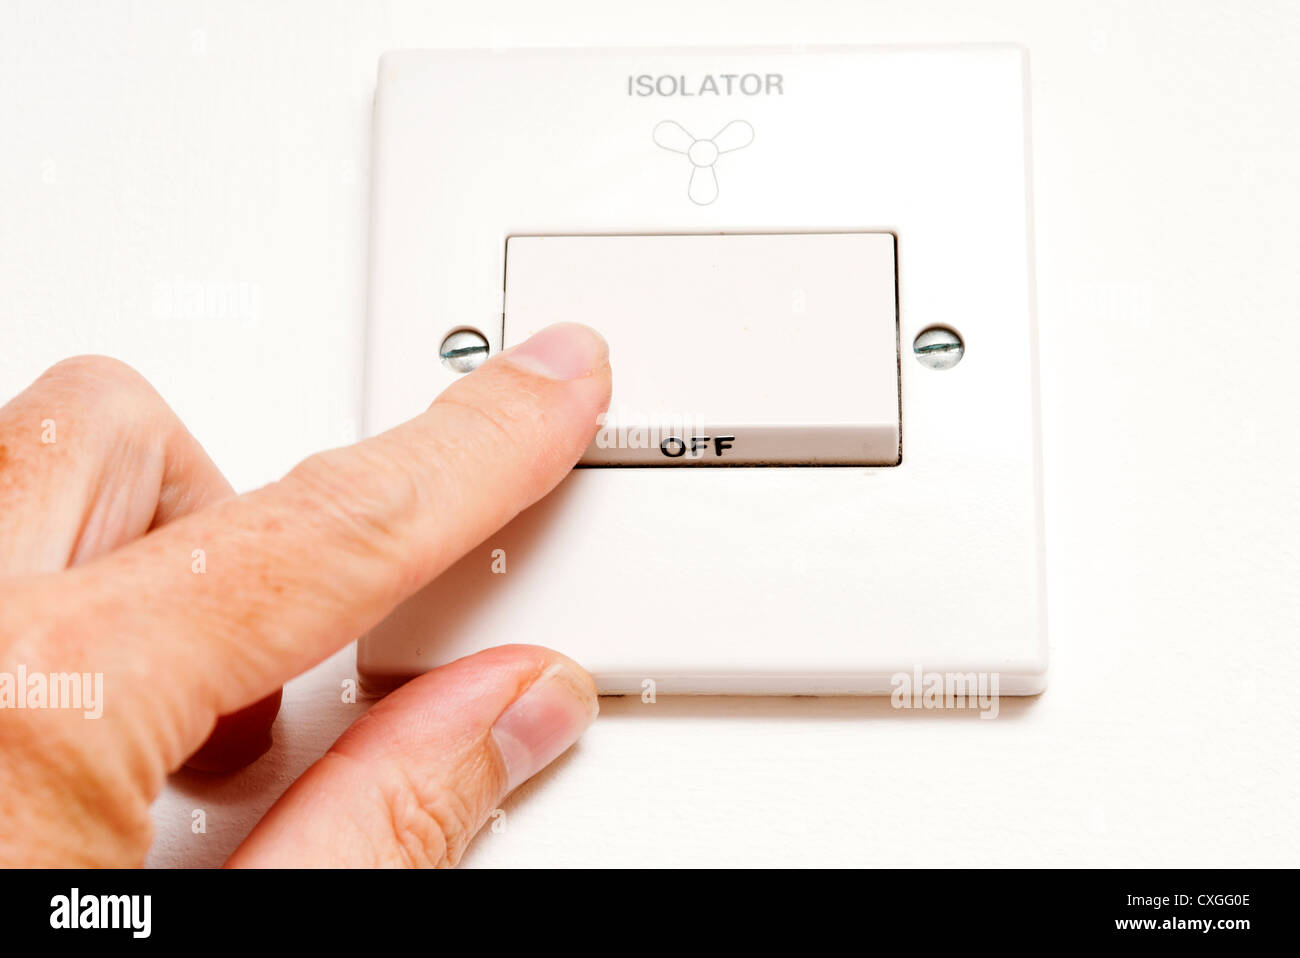 Isolator Stock Photos Images Alamy 4 Way Switch Turning Off An On A Domestic Kitchen Or Bathroom Fan Image